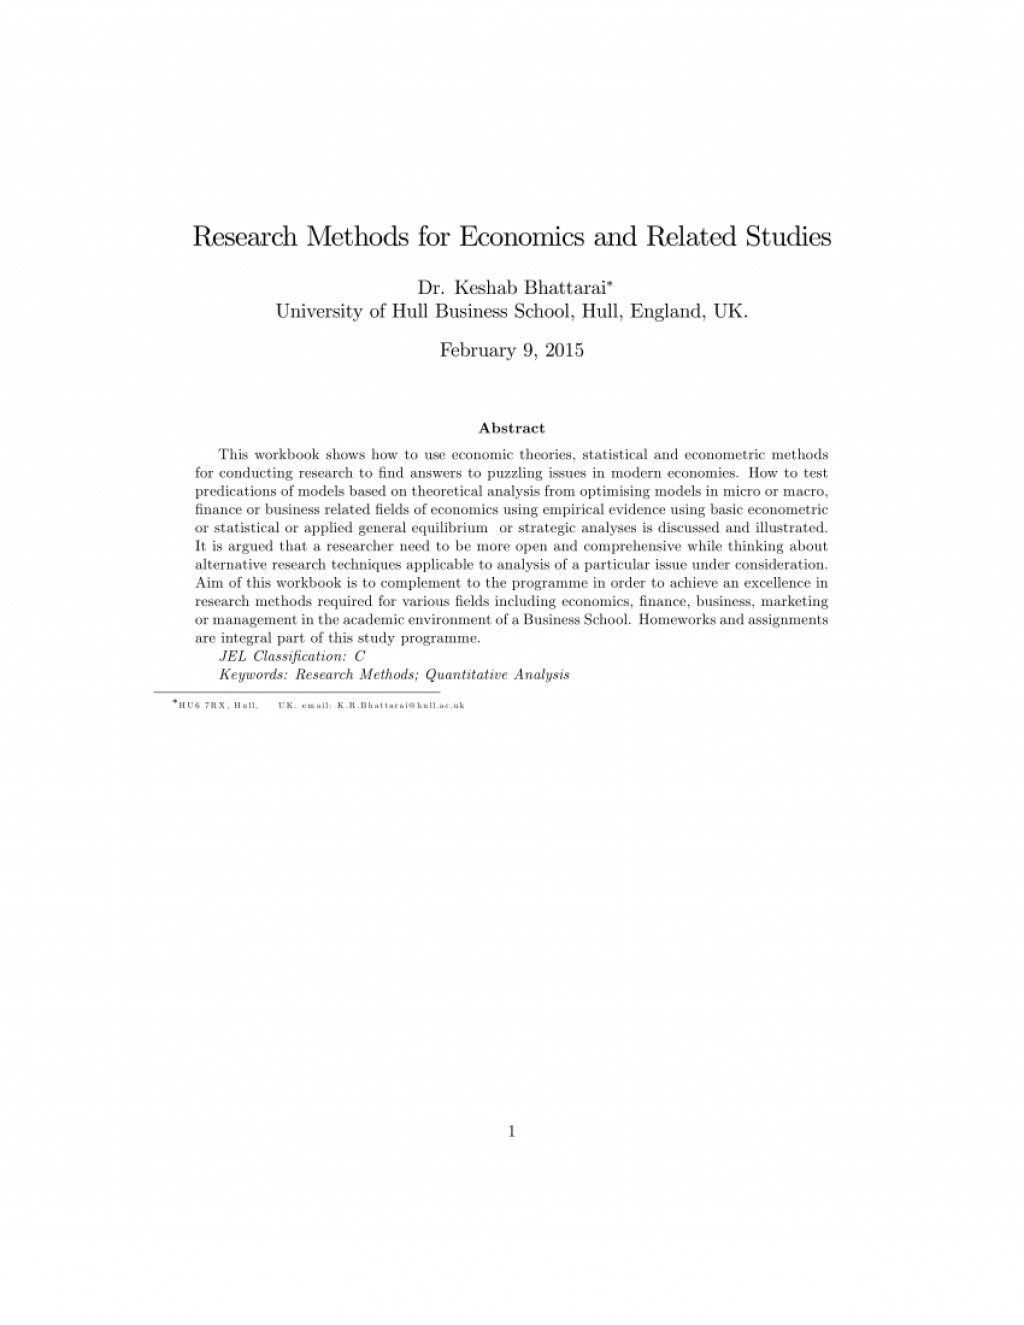 003 Largepreview Research Paper In Unusual Economics Topics Agricultural Ethiopia Pdf Large